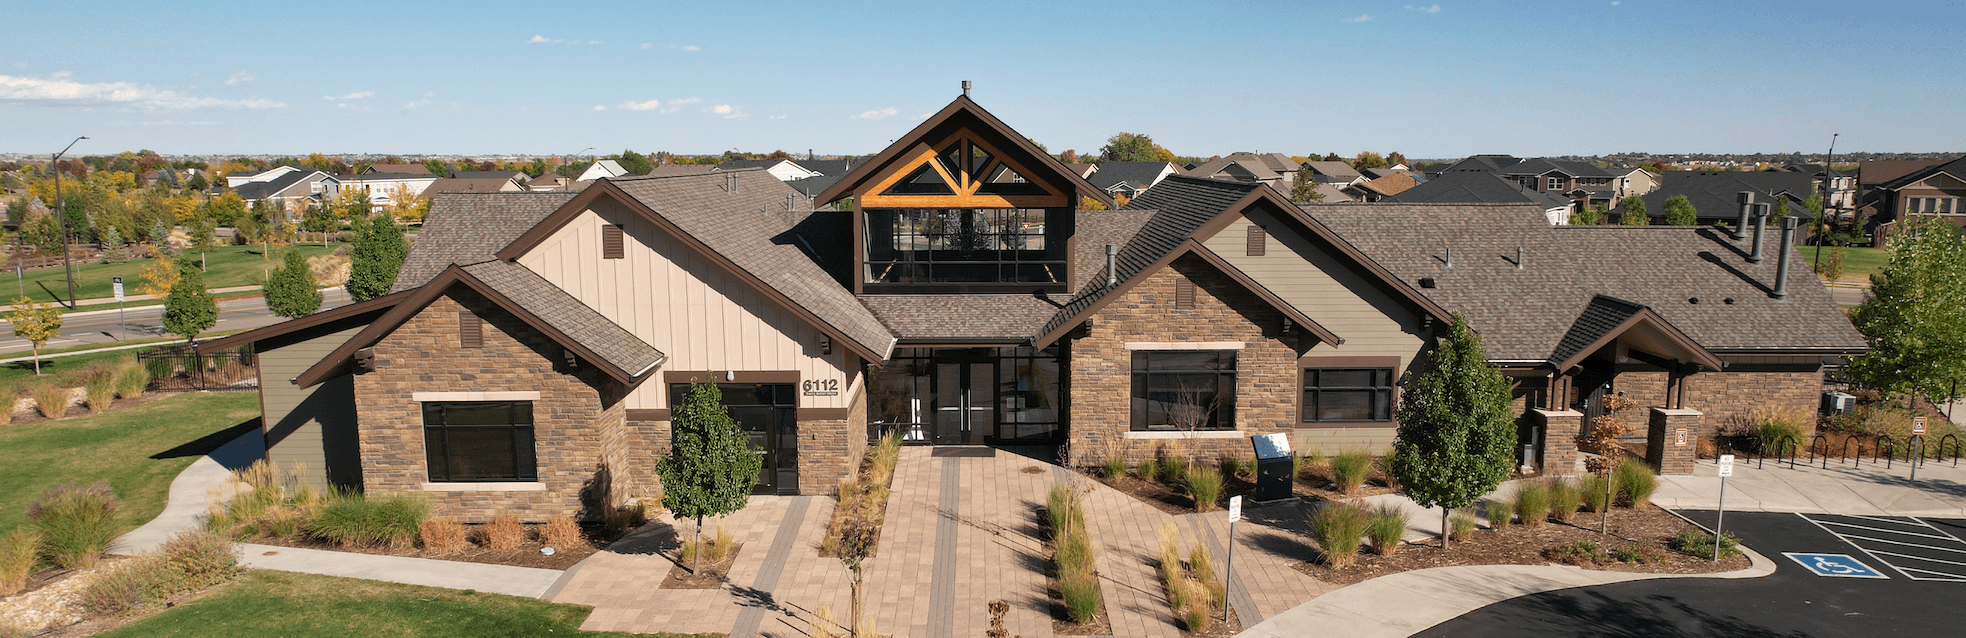 commercial roofing Greeley